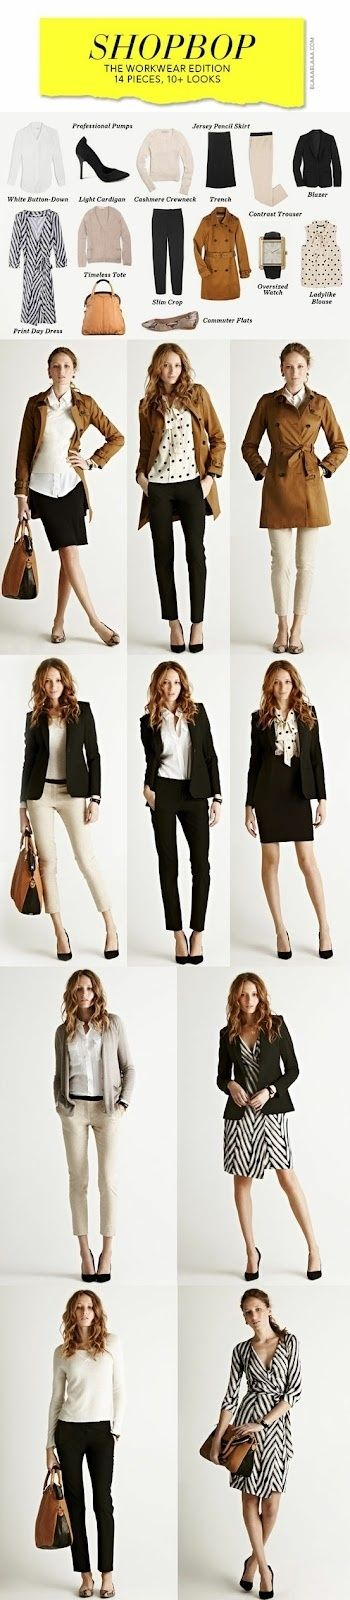 14 pieces, 10+ looks for work ... Wouldn't it be nice if I knew how to shop smart